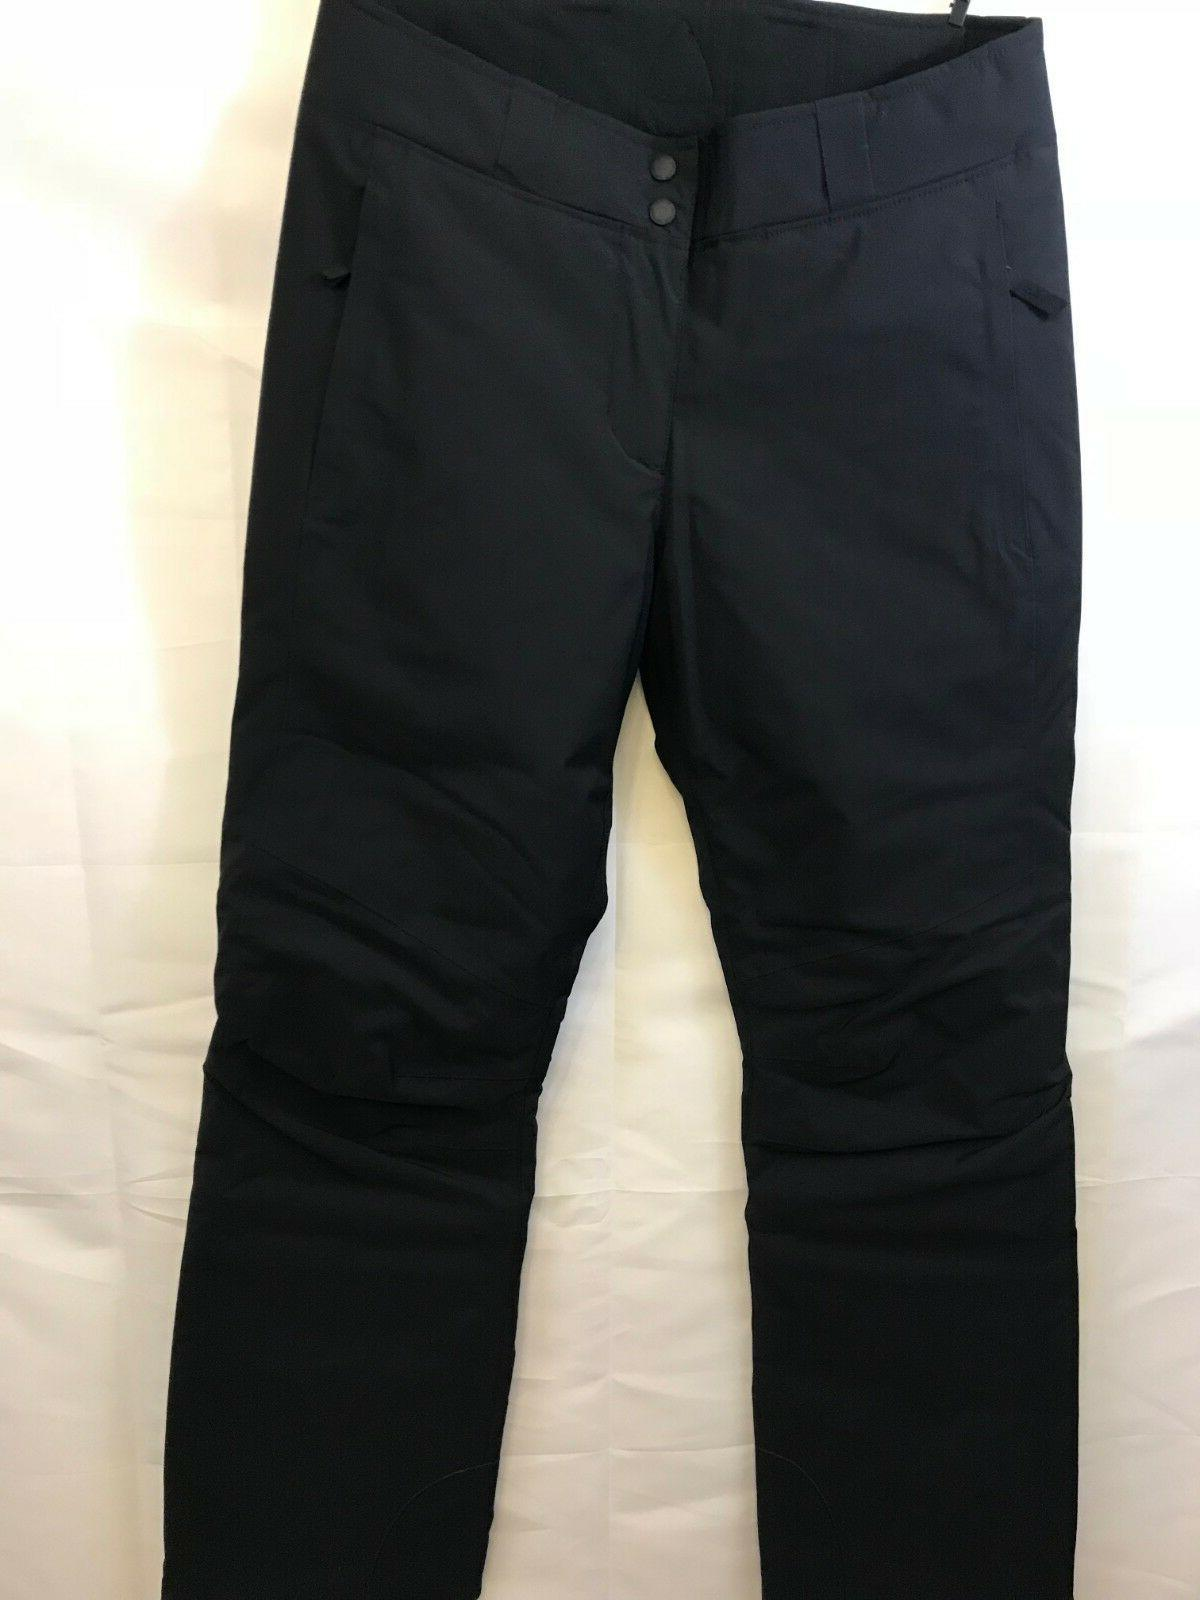 fire ice noel2 ski pants insulated size